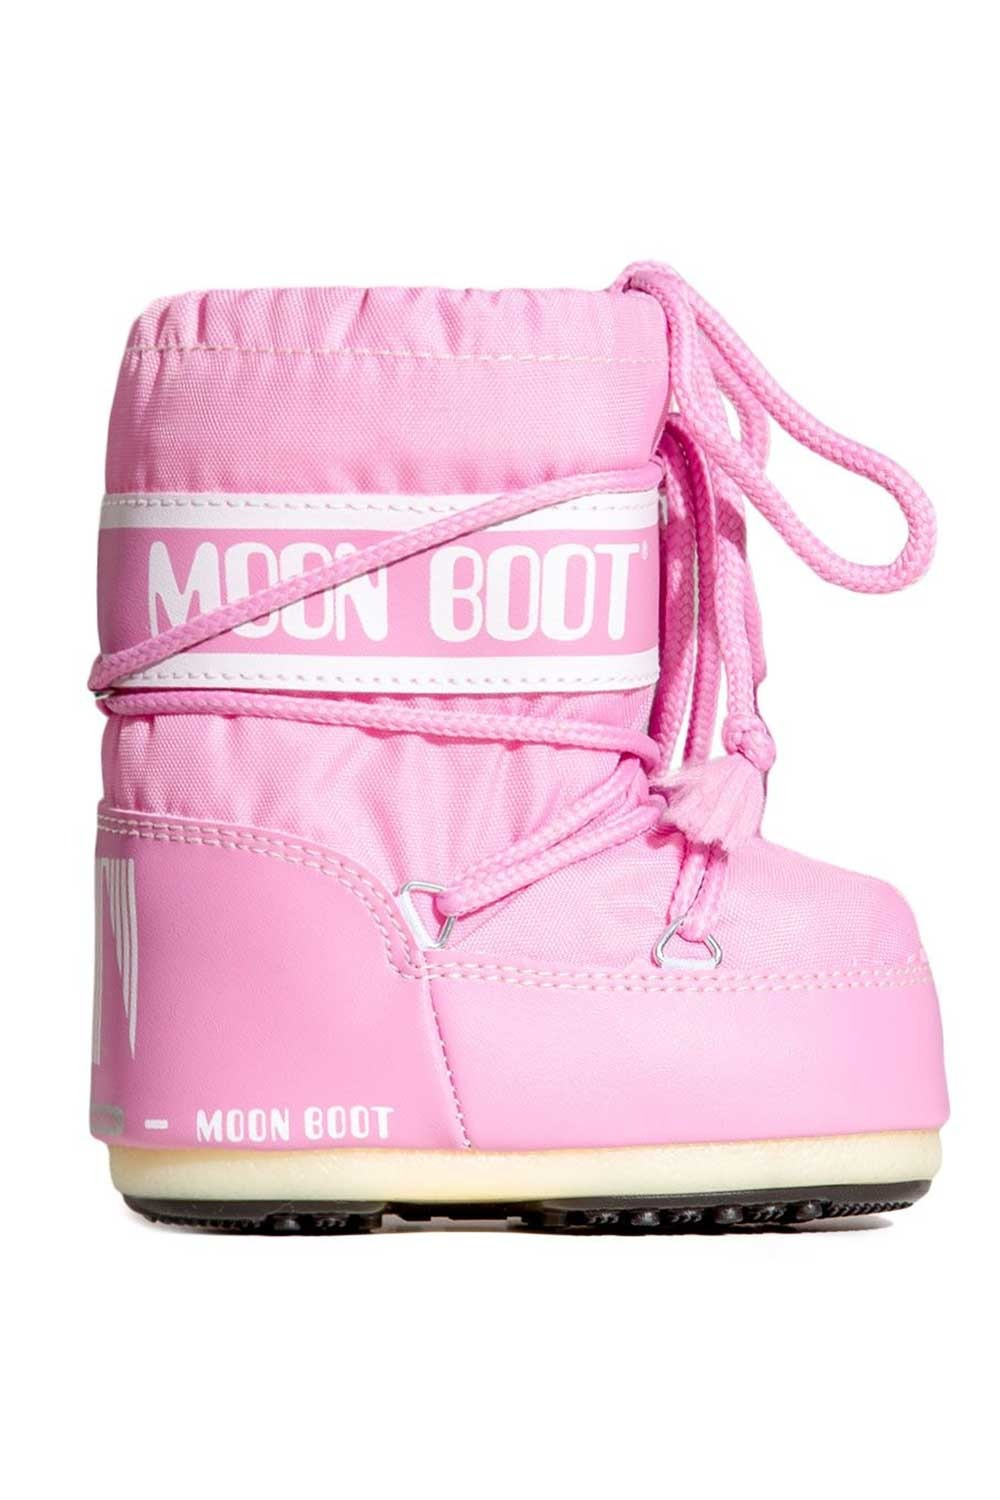 문부츠 키즈 방한부츠 미니 나일론_MOONBOOT YOUTH MOON BOOT MINI NYLON (120-145)_PINK_VMQ877PK_AVMQ877PK